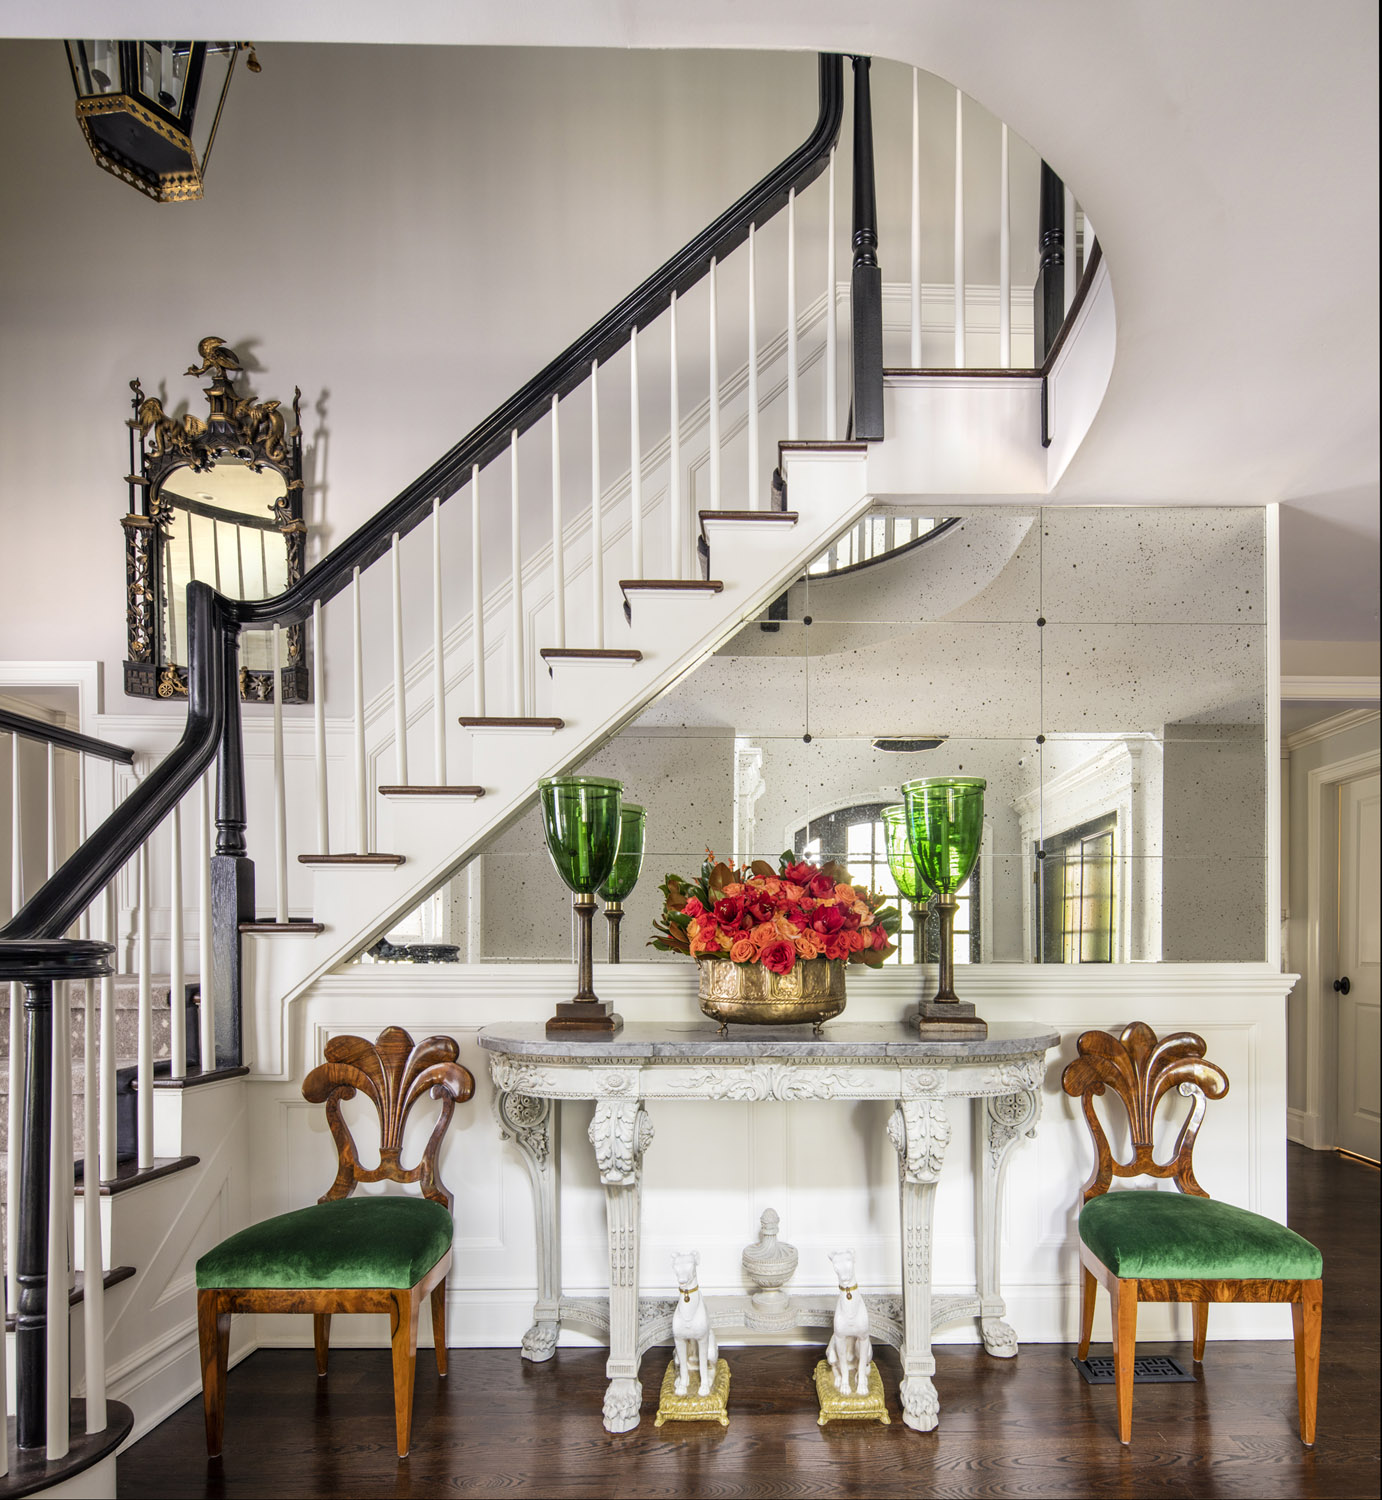 mat-entry-curved-stair.jpg